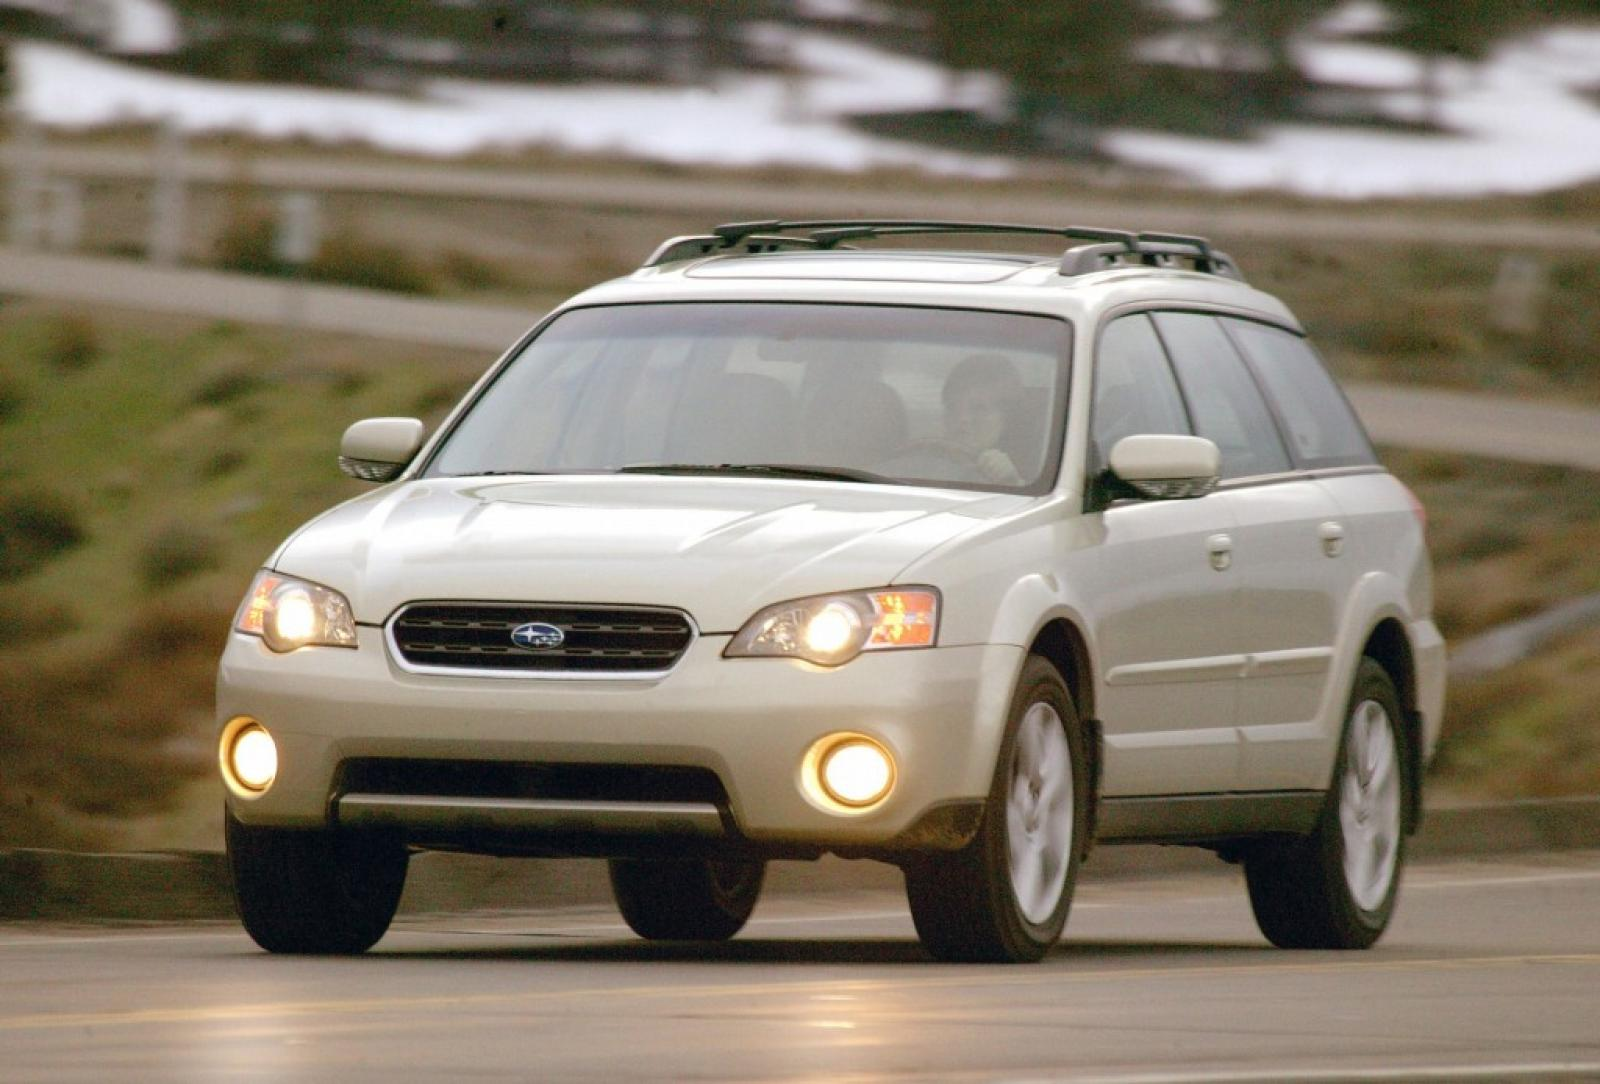 2007 Subaru Outback Information And Photos Zombiedrive